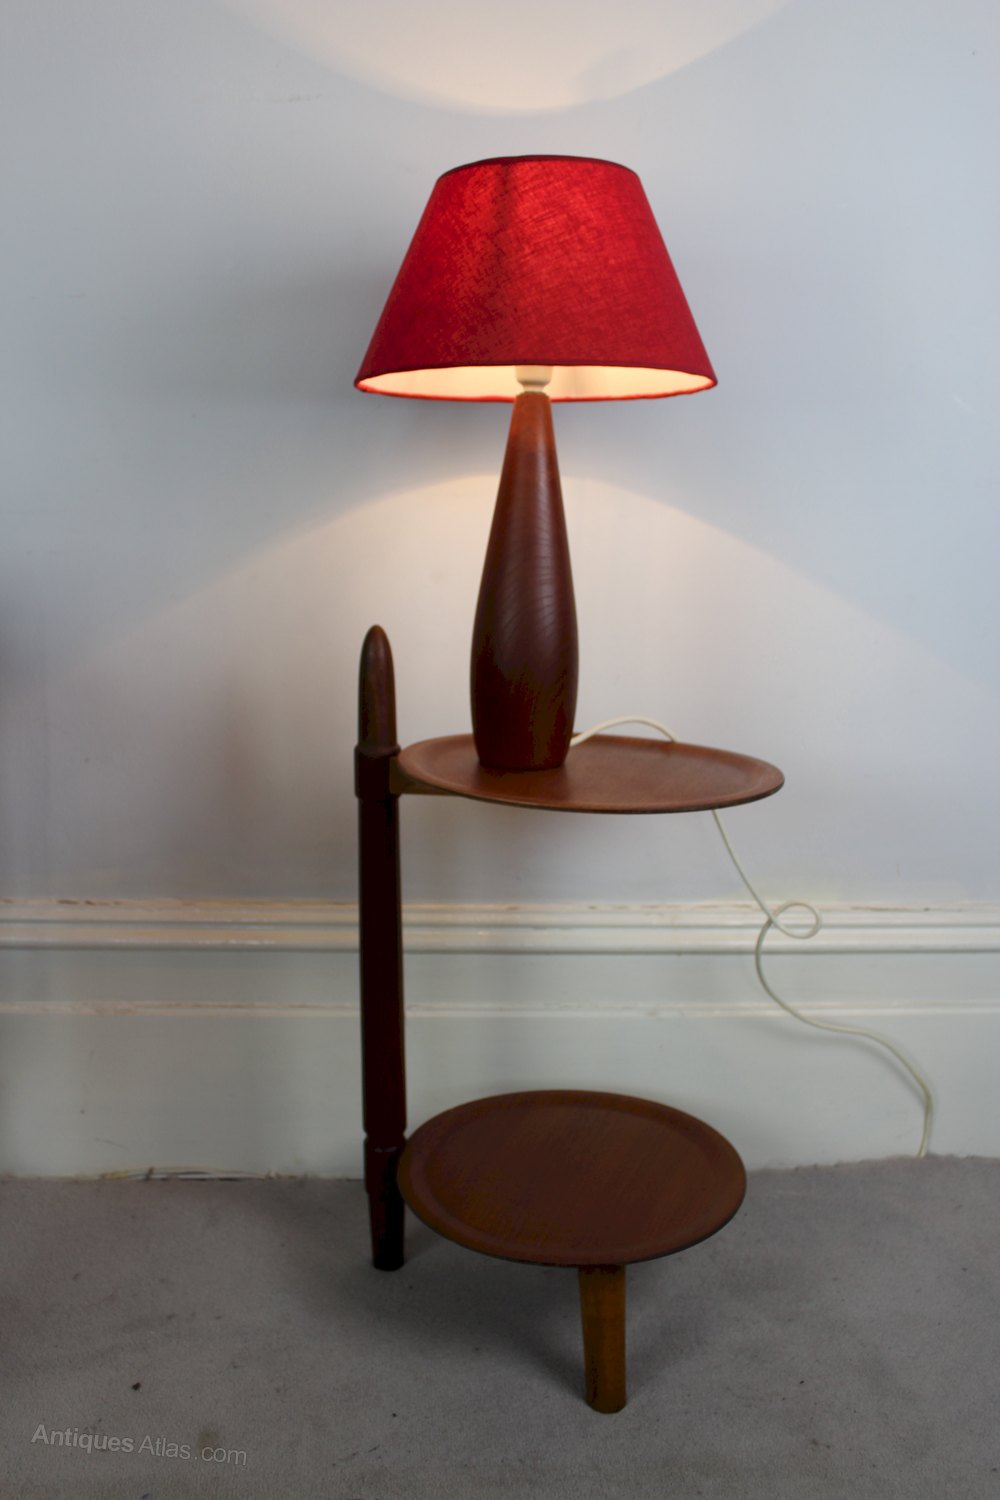 Antiques Atlas - Mid Century Teak Table Lamp C1950